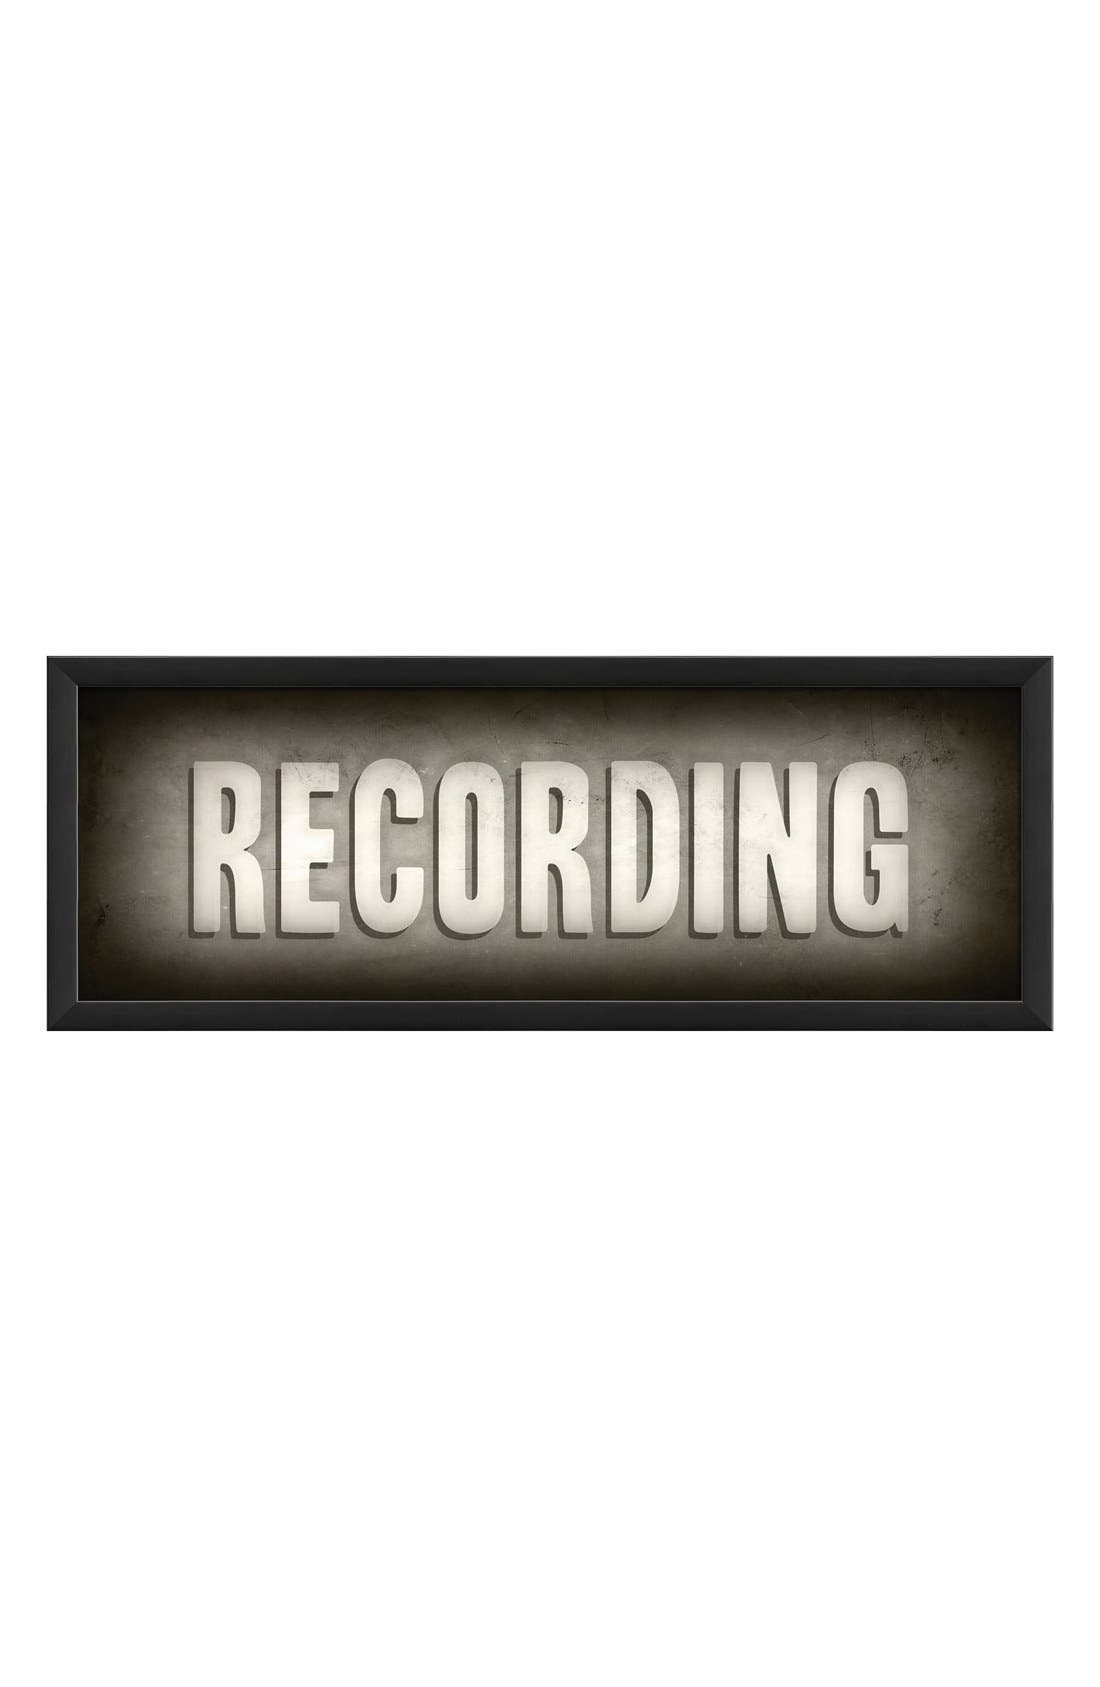 Main Image - Spicher and Company 'Recording' Vintage Look Theater Sign Artwork